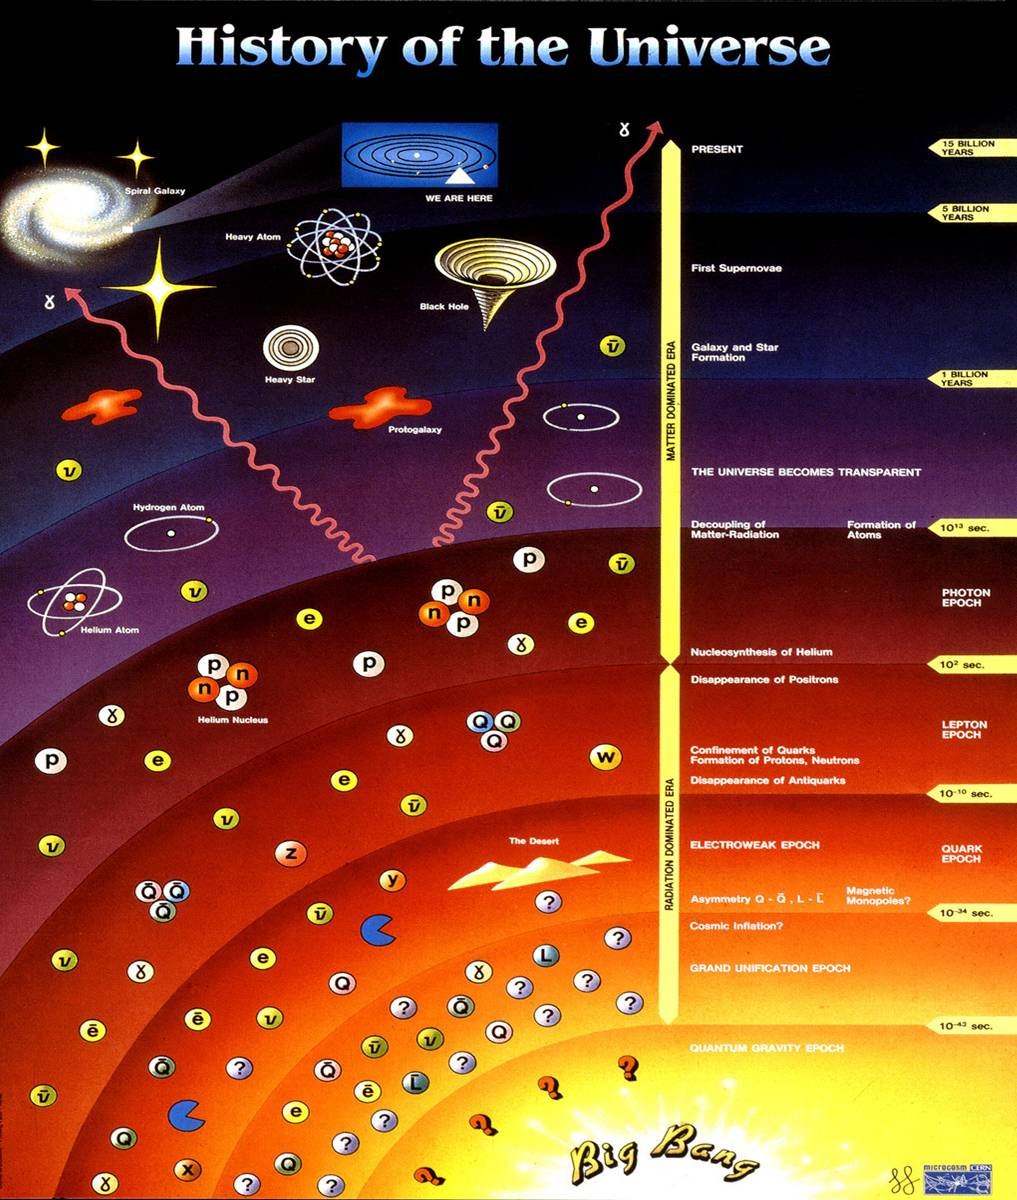 timeline of big bang nucleosynthesis